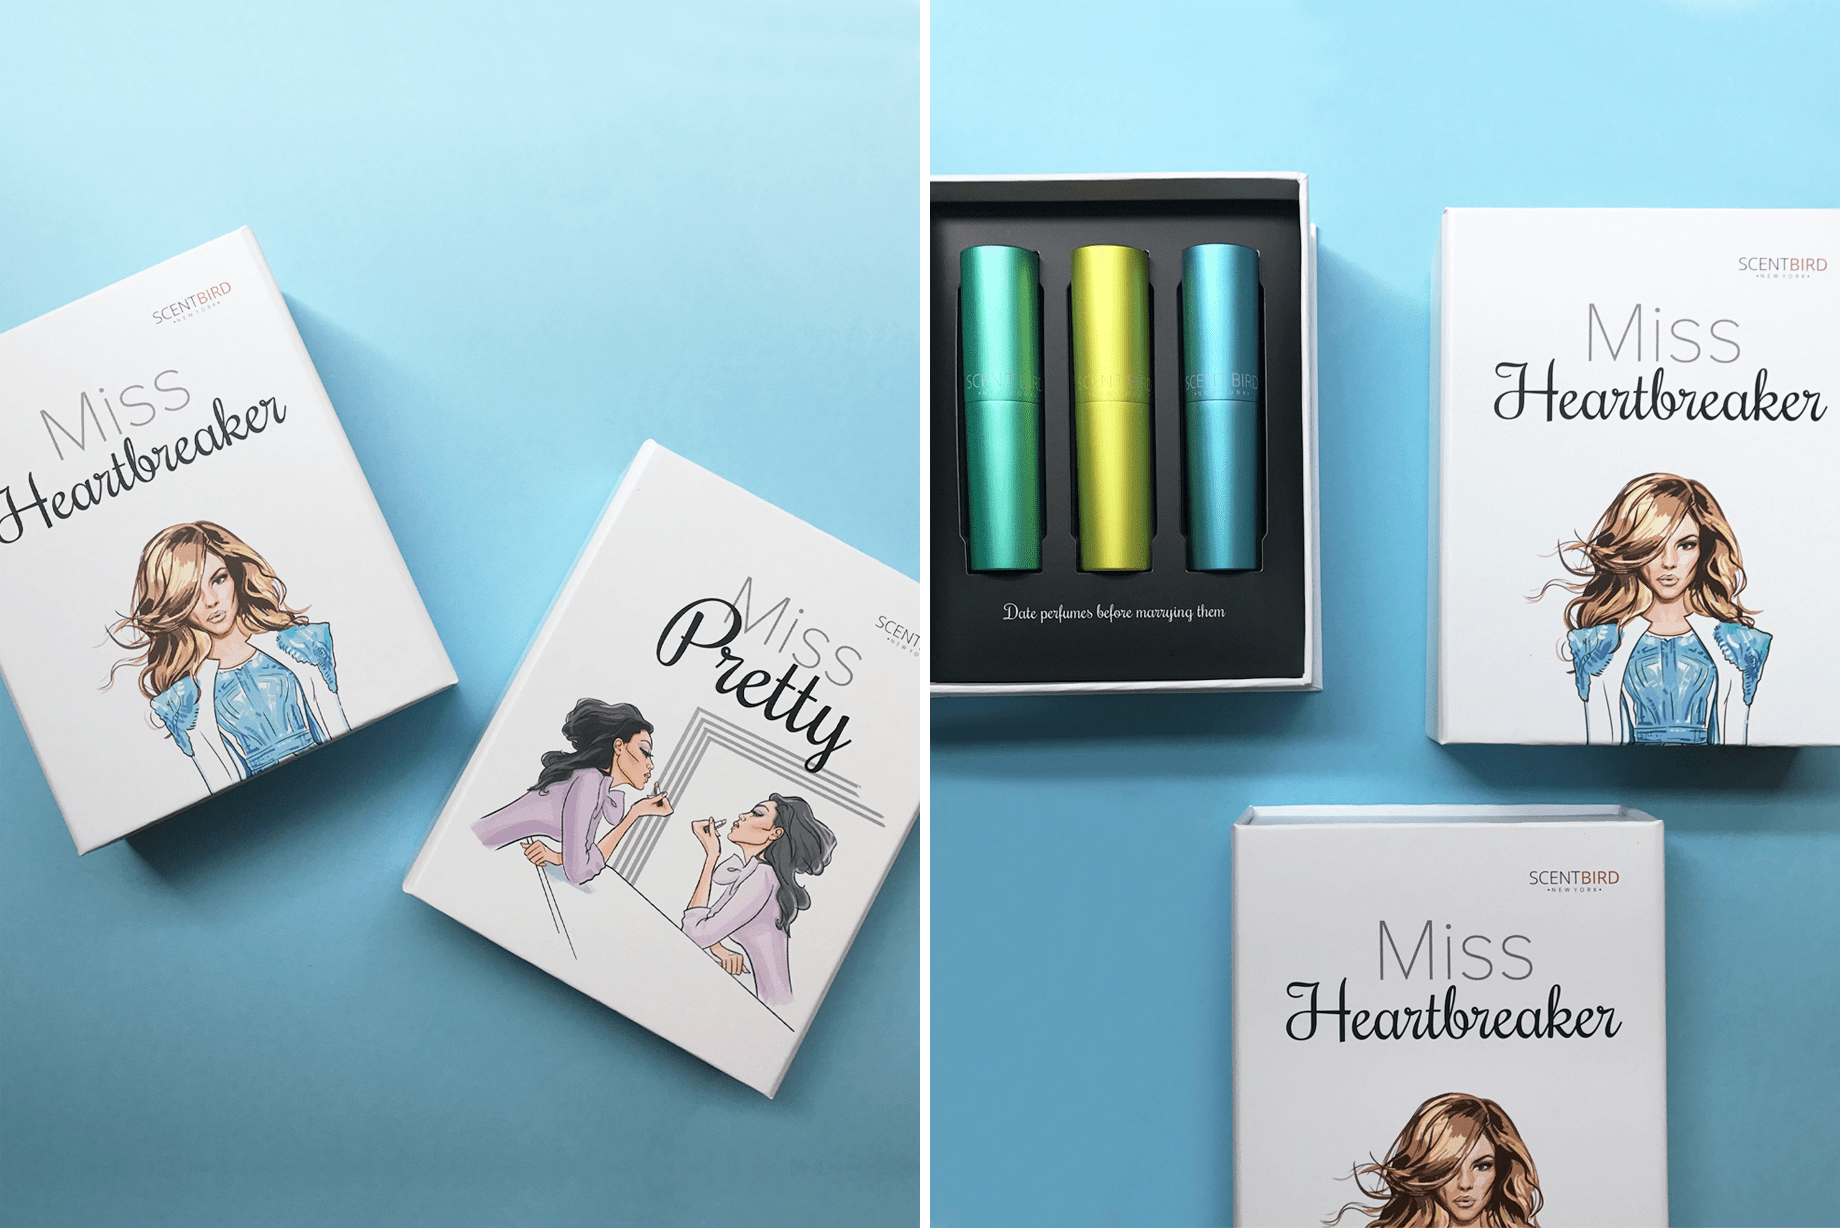 SCENTBIRD's 2017 Holiday Gift Guide